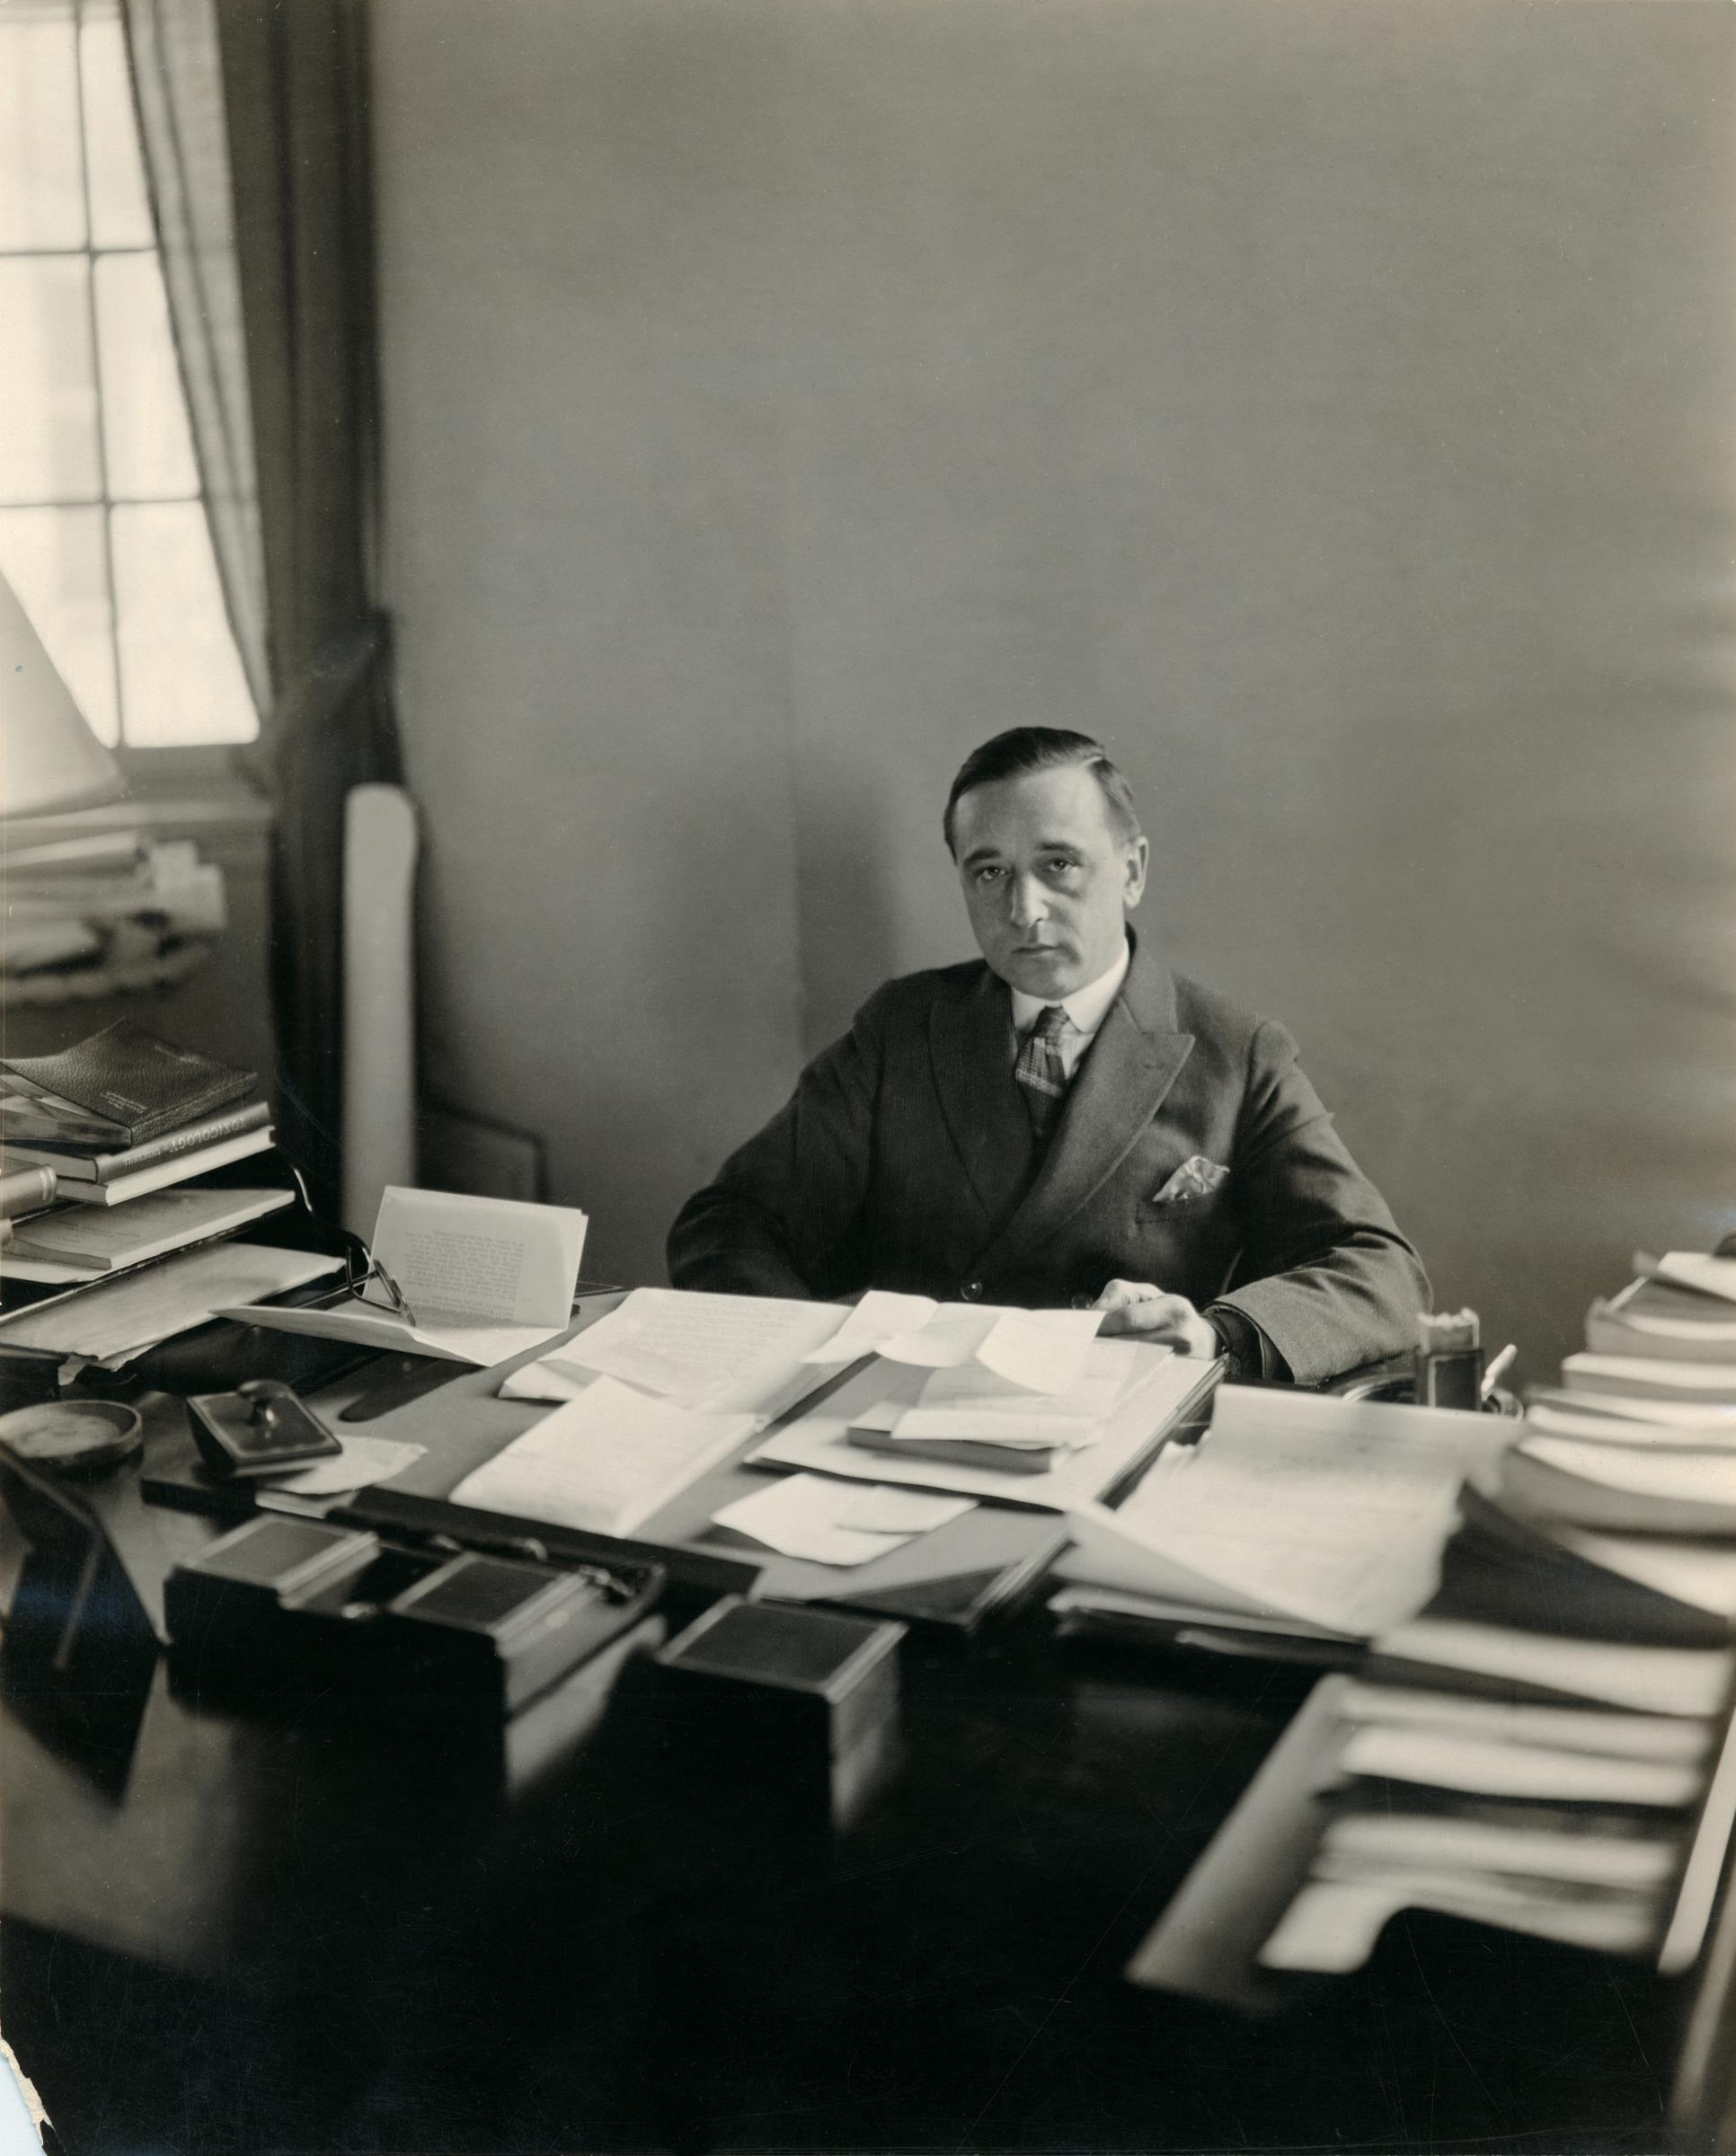 Milton Charles Winternitz looks up from his papers in a photograph dated 1939, four years after he stepped down as dean. During his 15 years leading the school, Winternitz reorganized the medical school departments, recruited a legendary faculty and estab